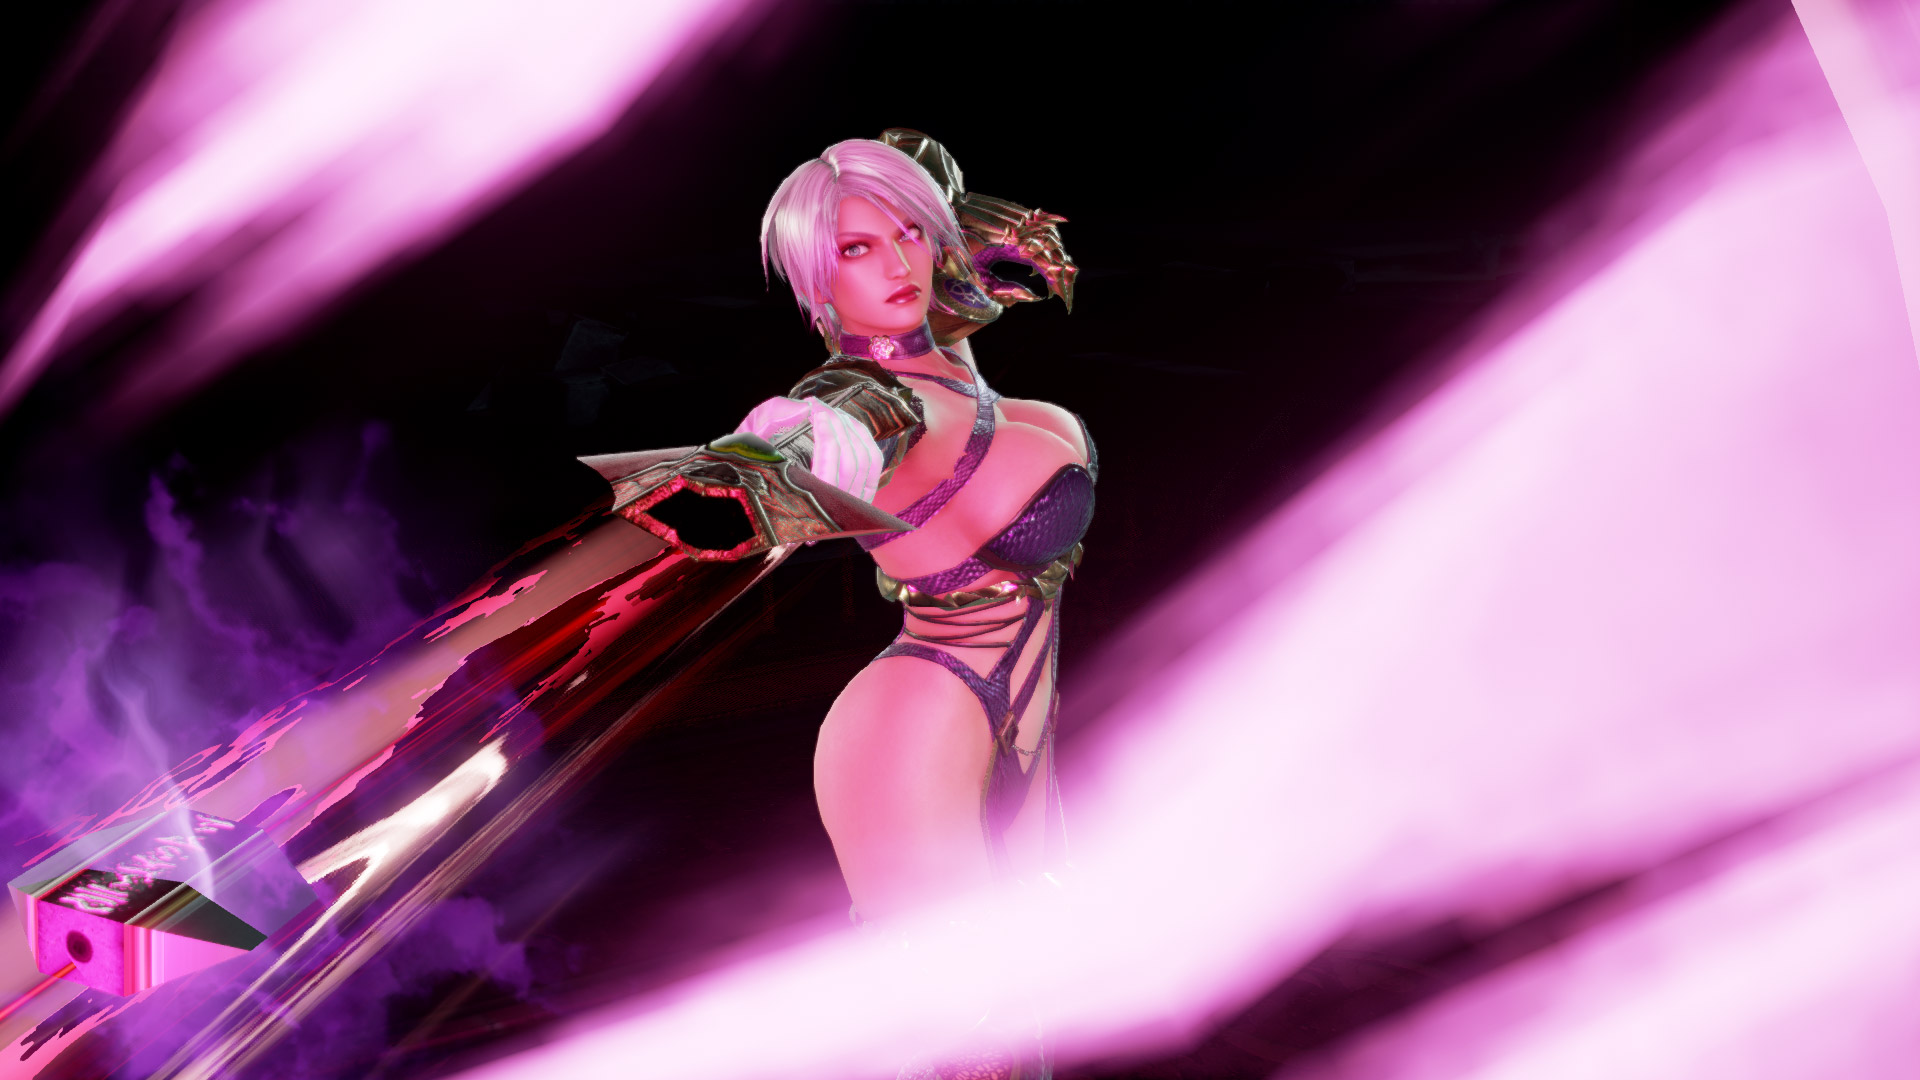 Ivy and Zasalamel confirmed for Soul Calibur VI